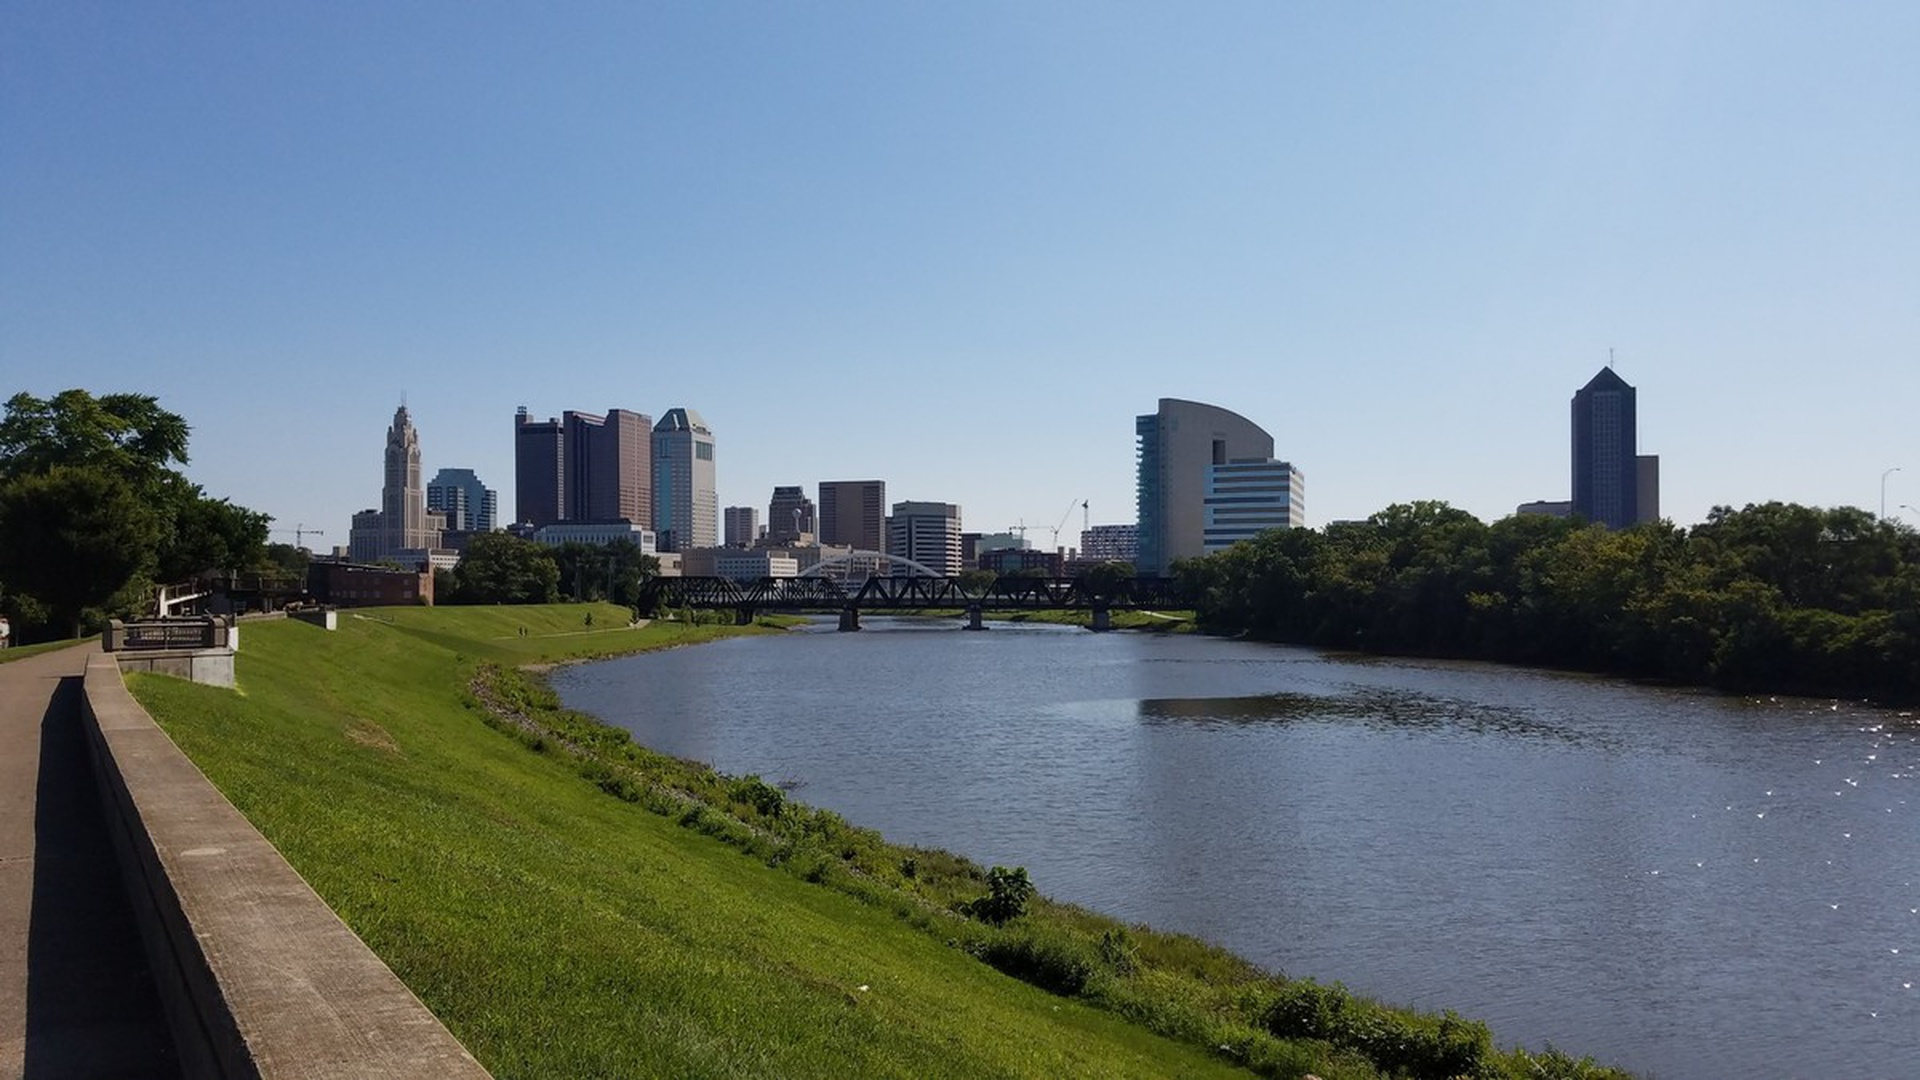 The Scioto River and downtown Columbus.